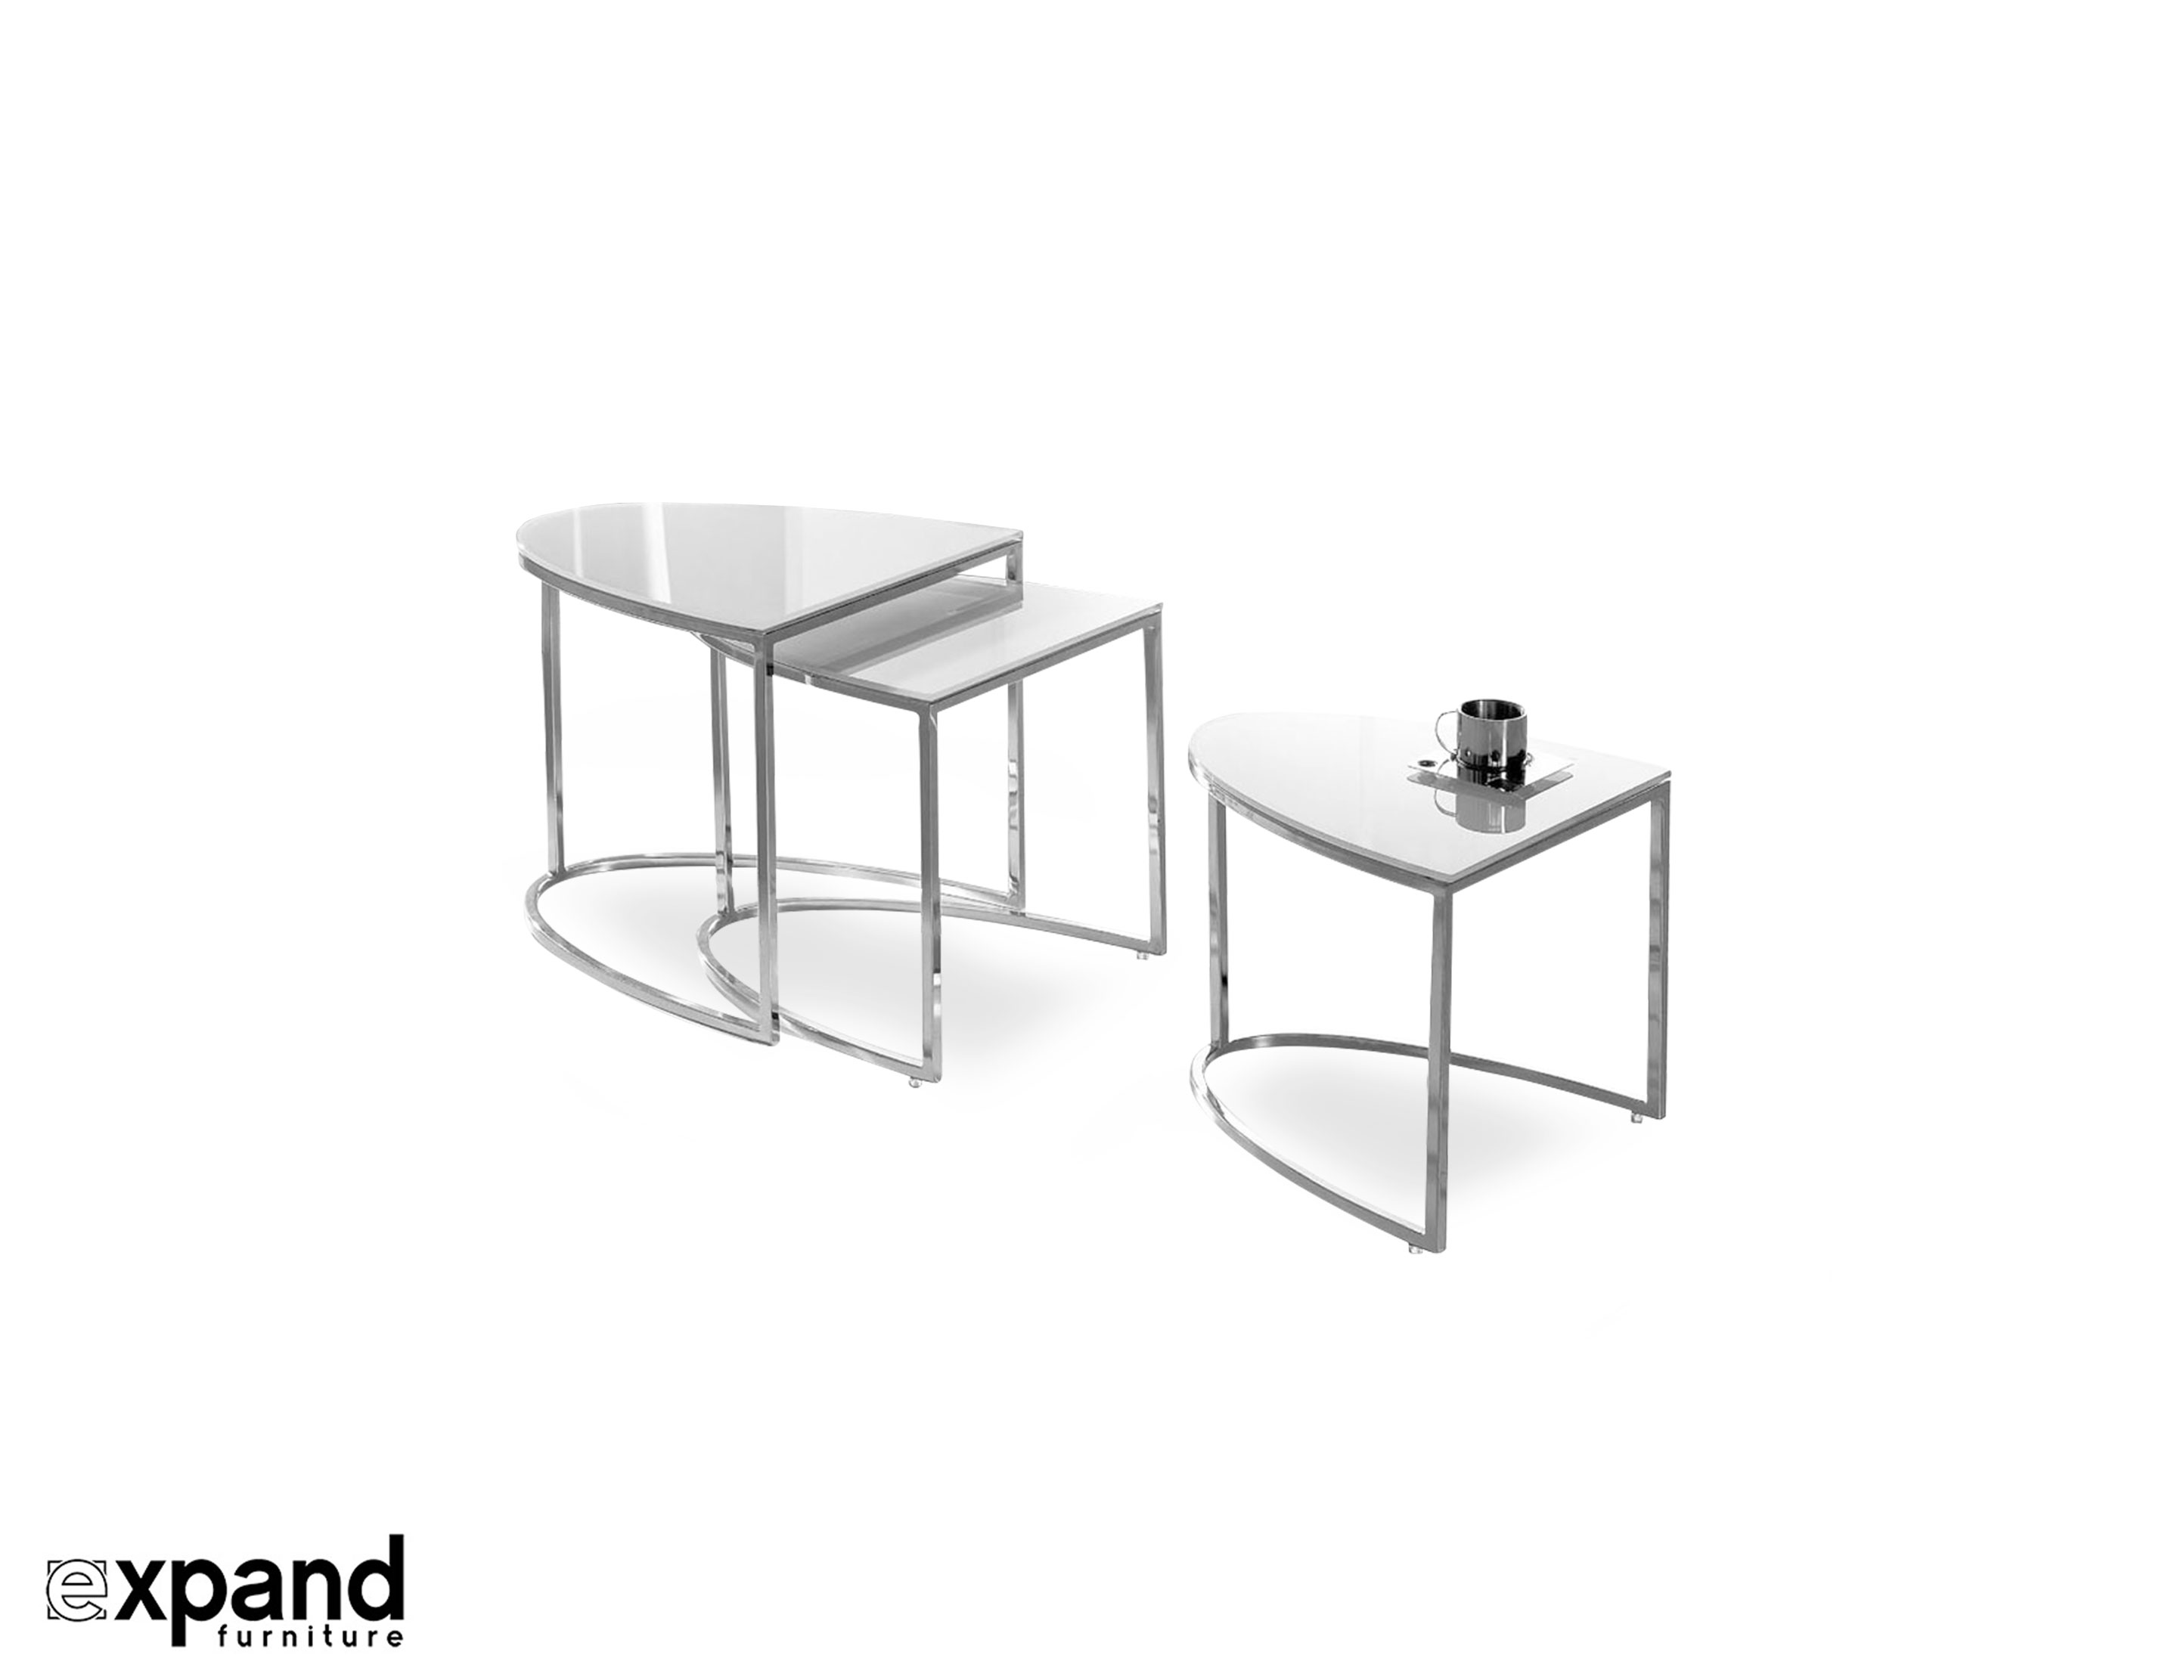 bow nesting tables for apartments  expand furniture - prev